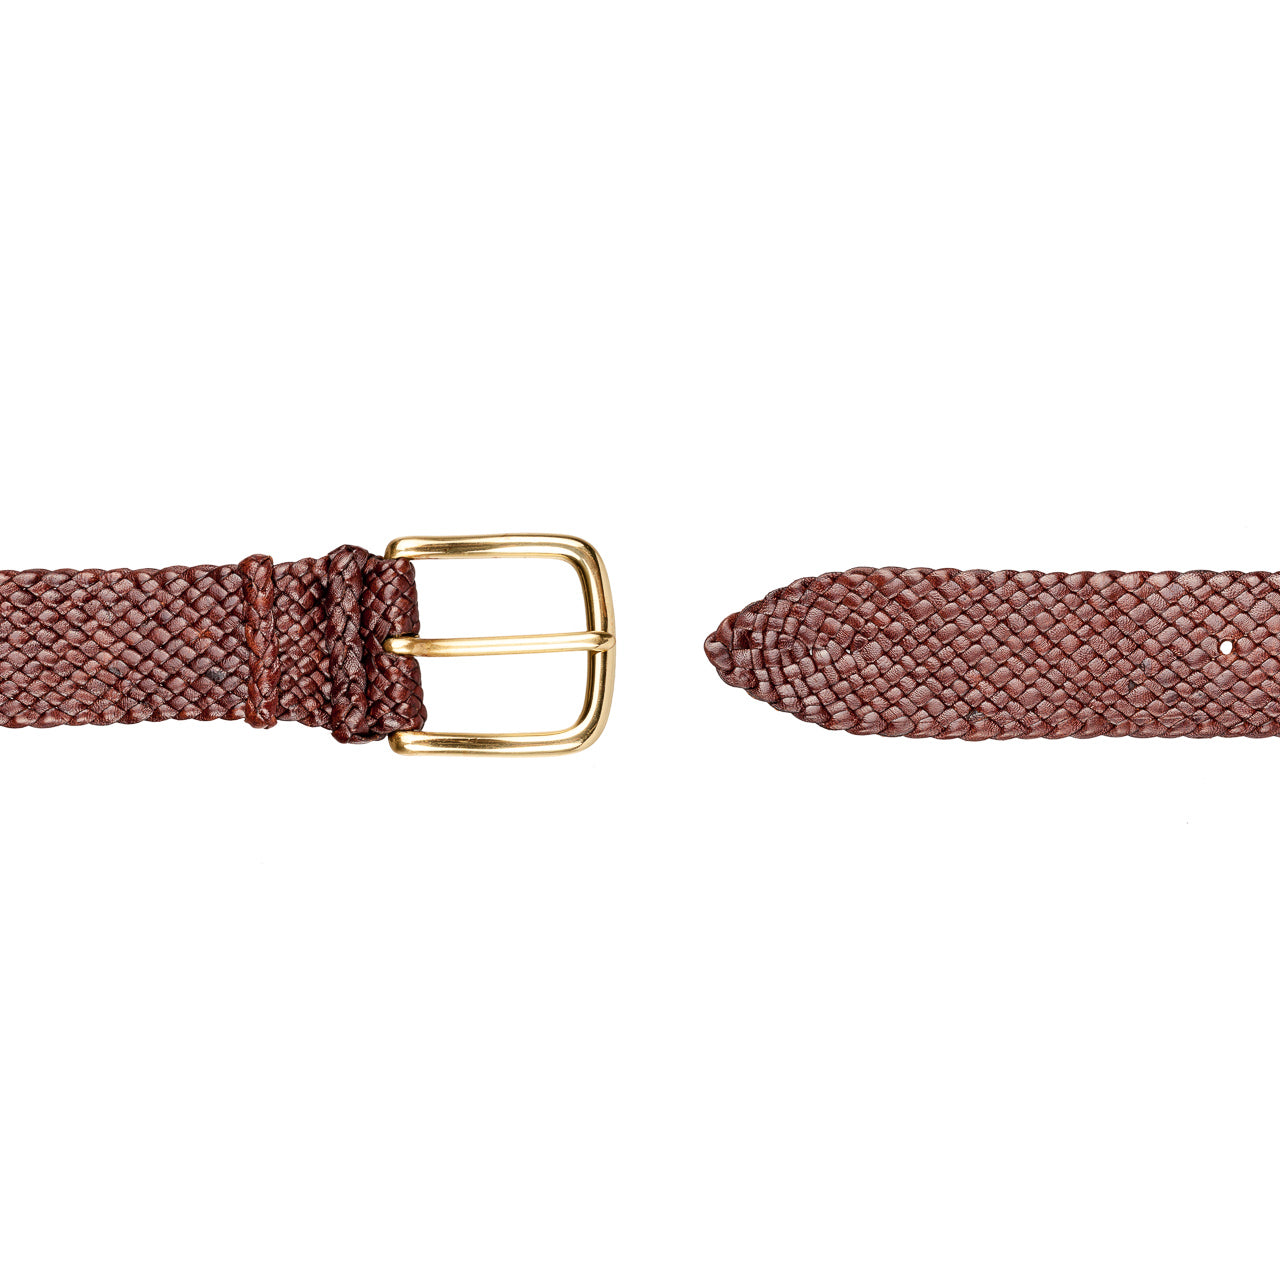 Eureka Kangaroo 16 Strand Plaited Mens Belt (32mm Wide)